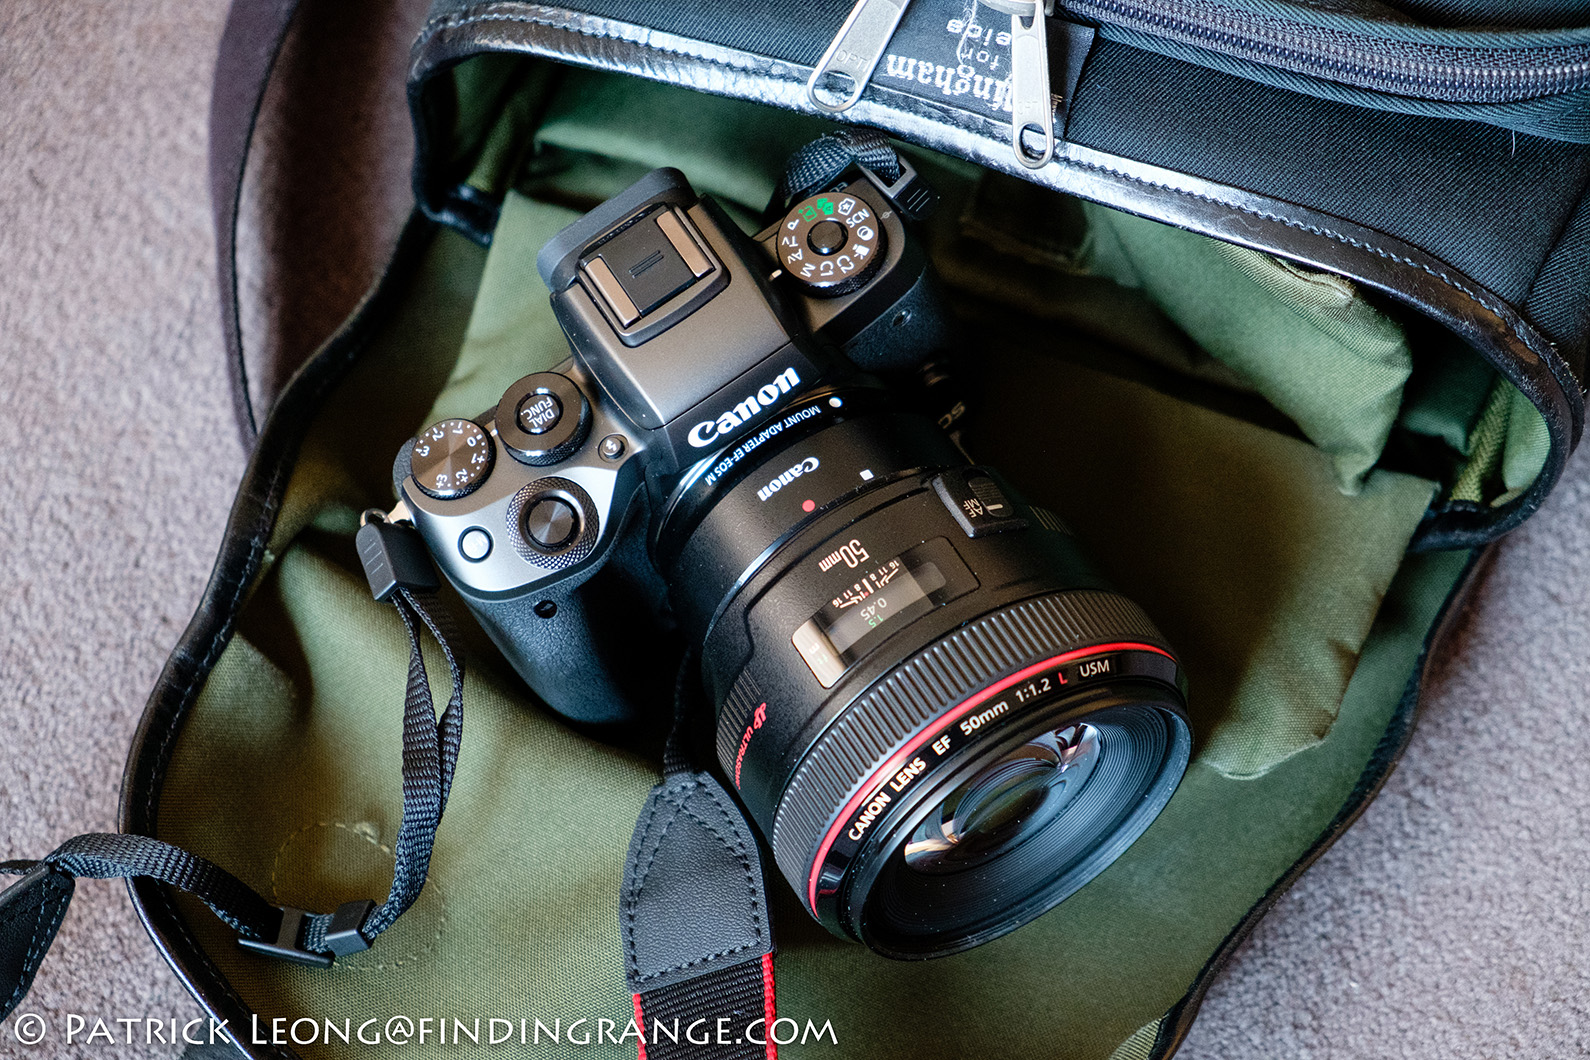 Images From The Canon EOS M5 And EF 50mm f1.2L USM